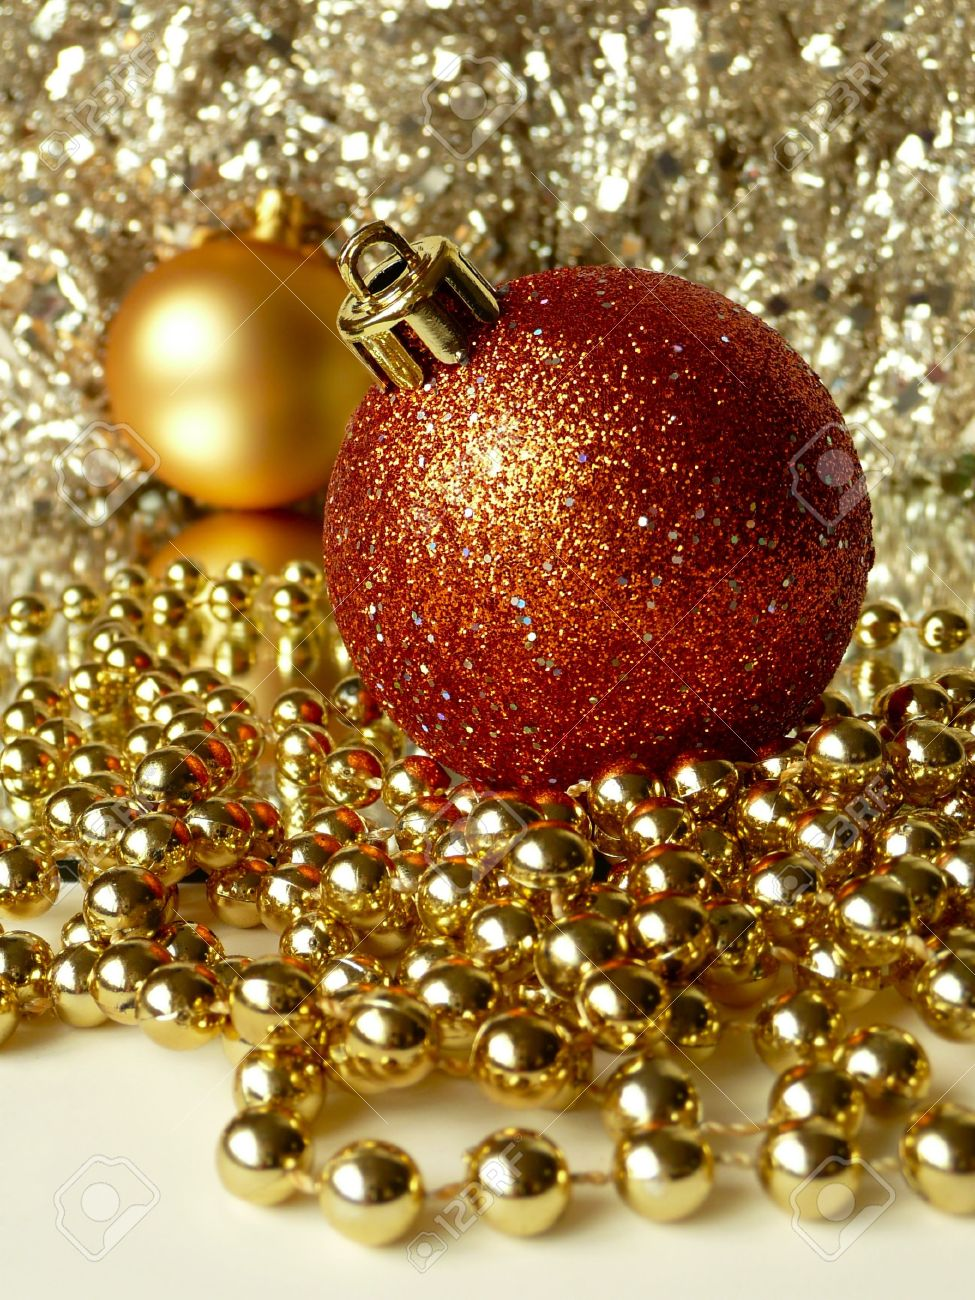 Red & Gold Christmas Tree Balls Surrounded By Tinsel And Decorative Beads  Stock Photo  3574038